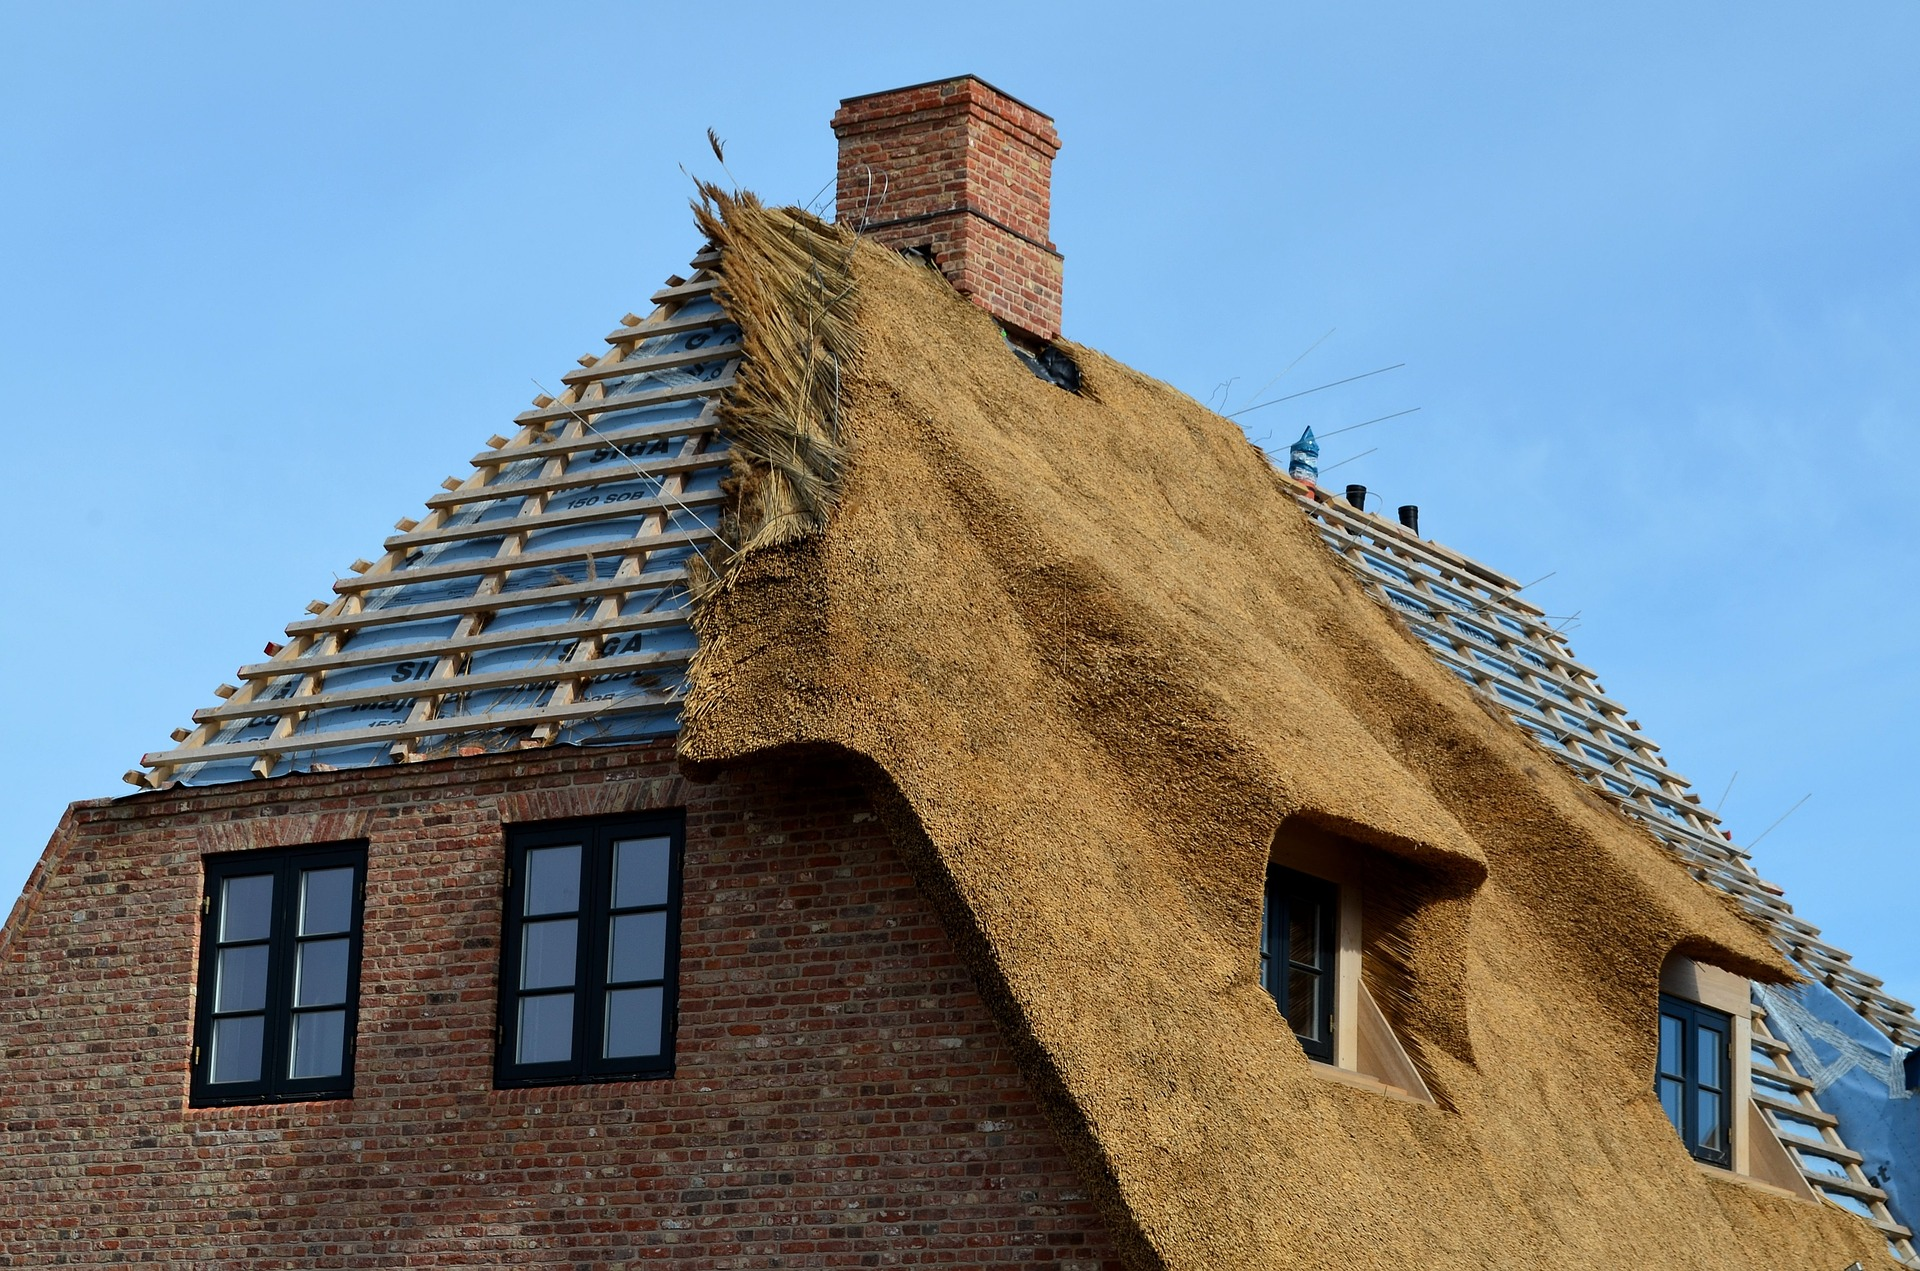 A thatched roof partway through construction.